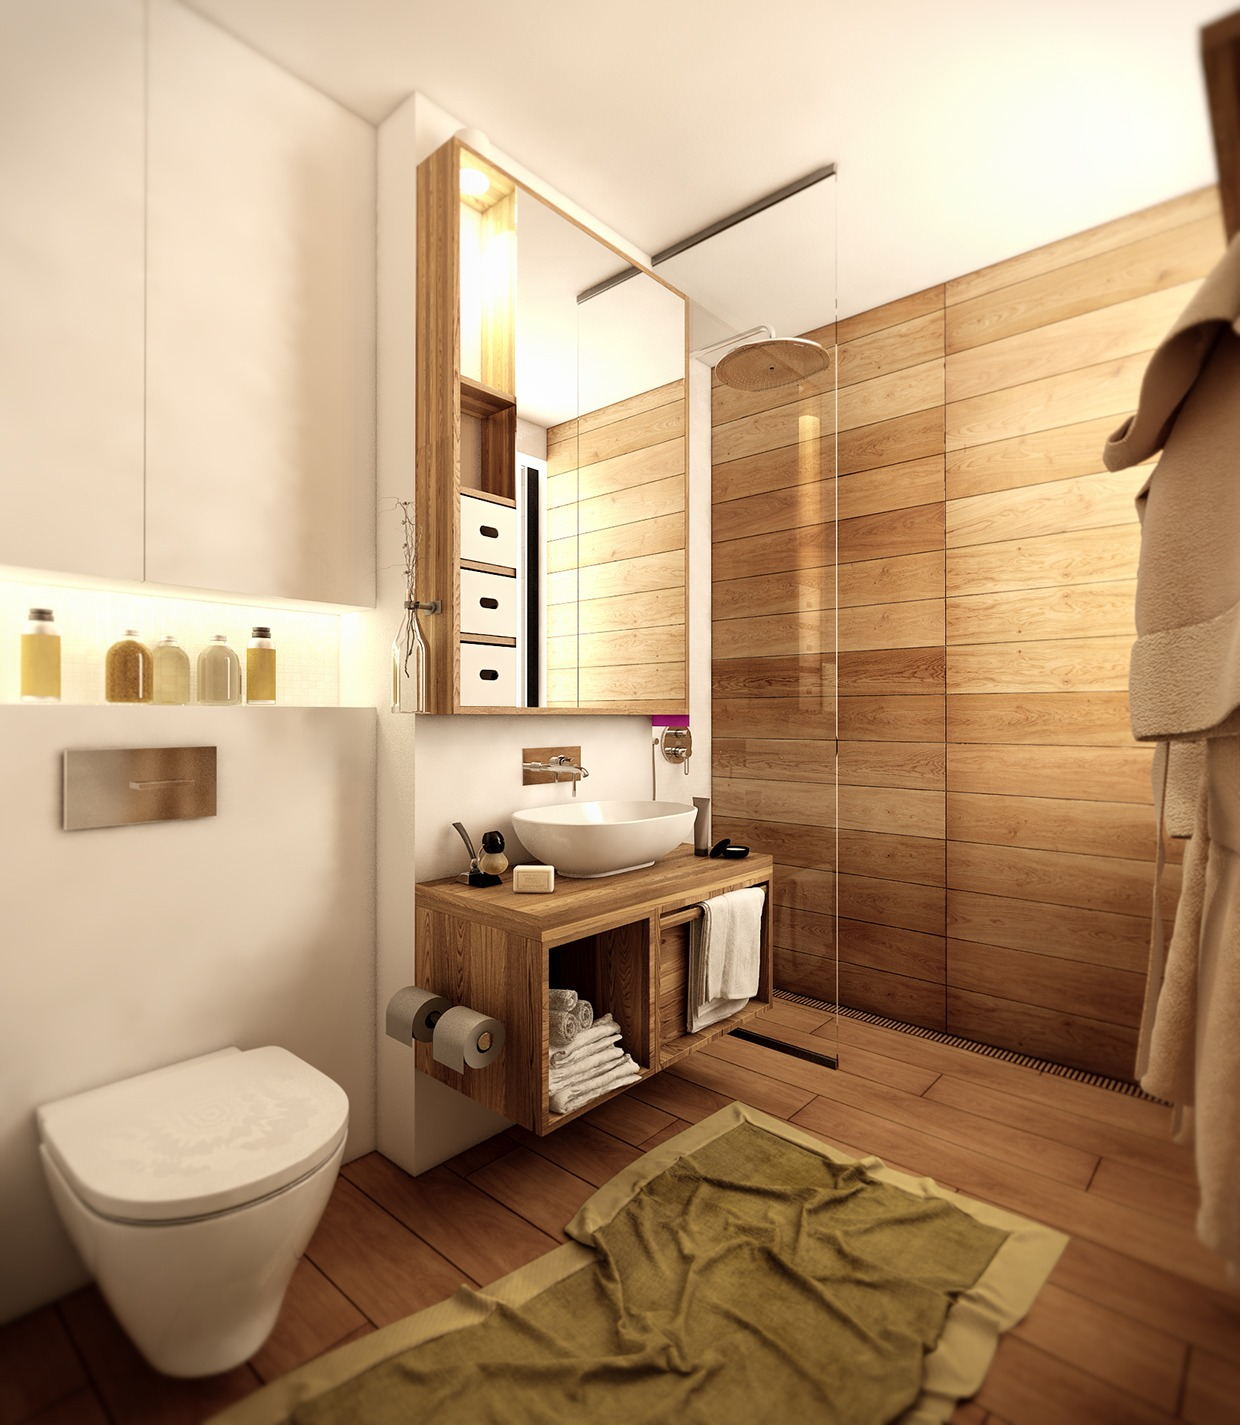 Wood floor bathroom interior design ideas for Hardwood floors in bathroom